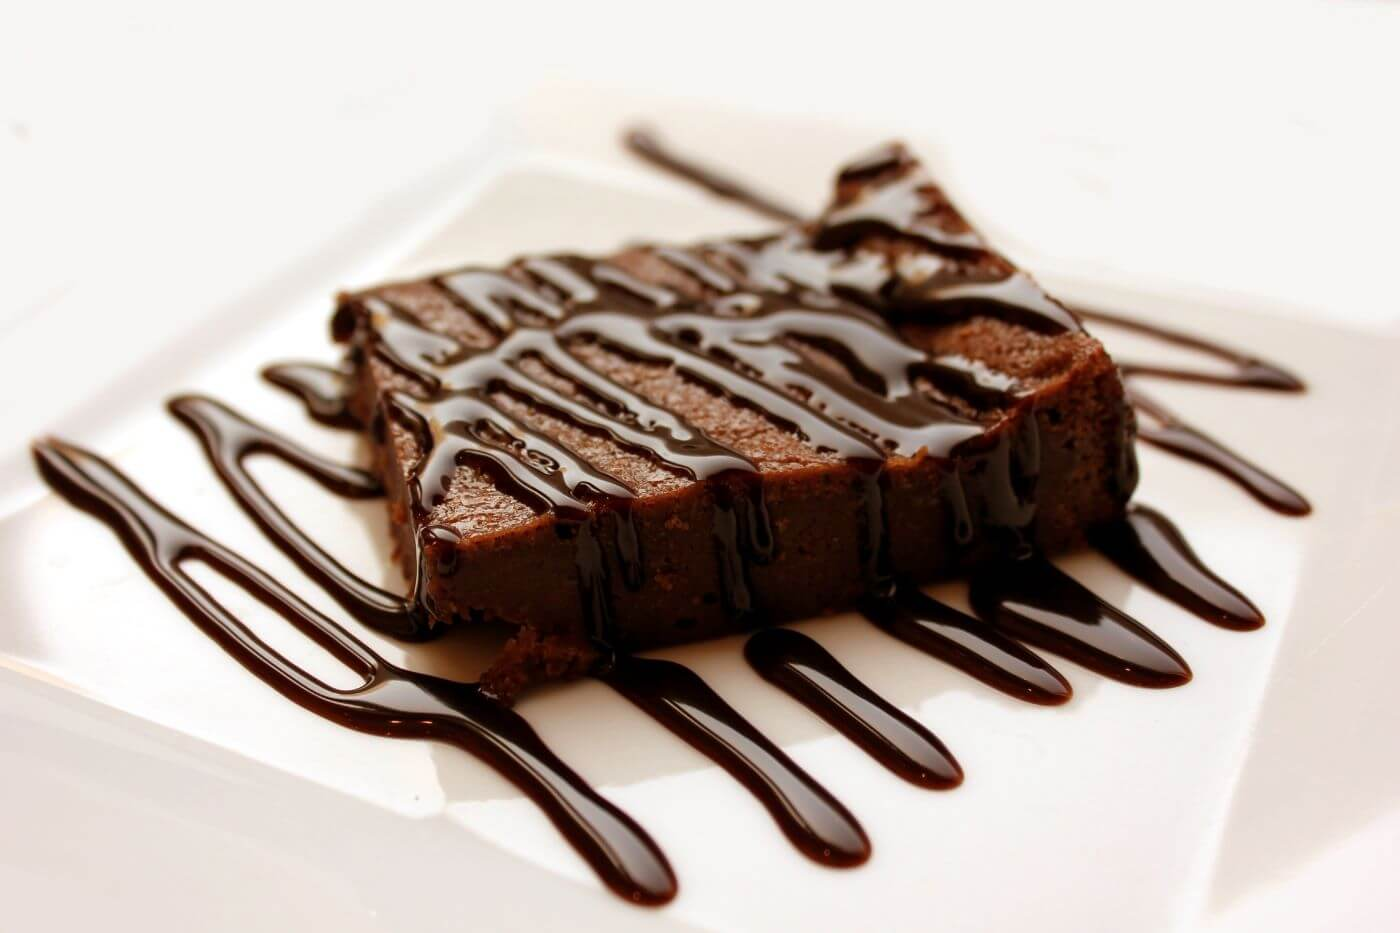 handmade chocolate best startup ideas in india